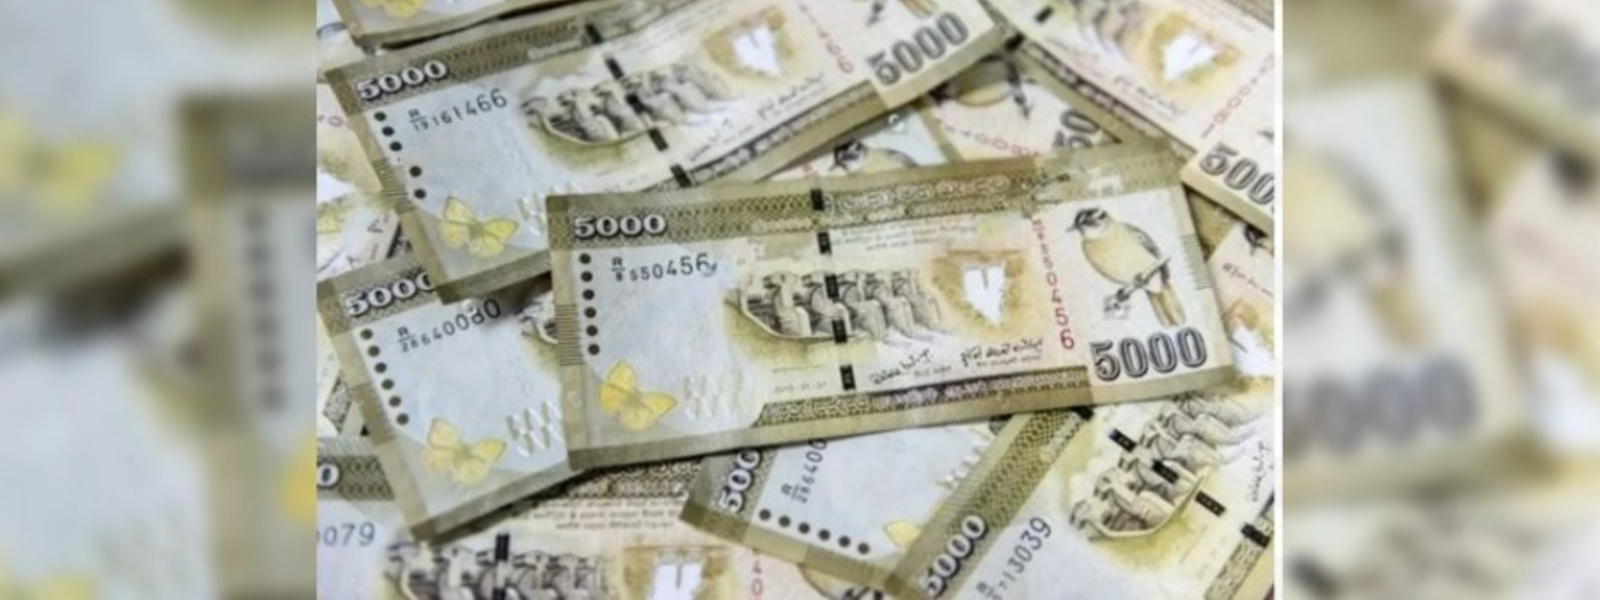 Rs. 5,000 allowance for May, to be paid from 11th May